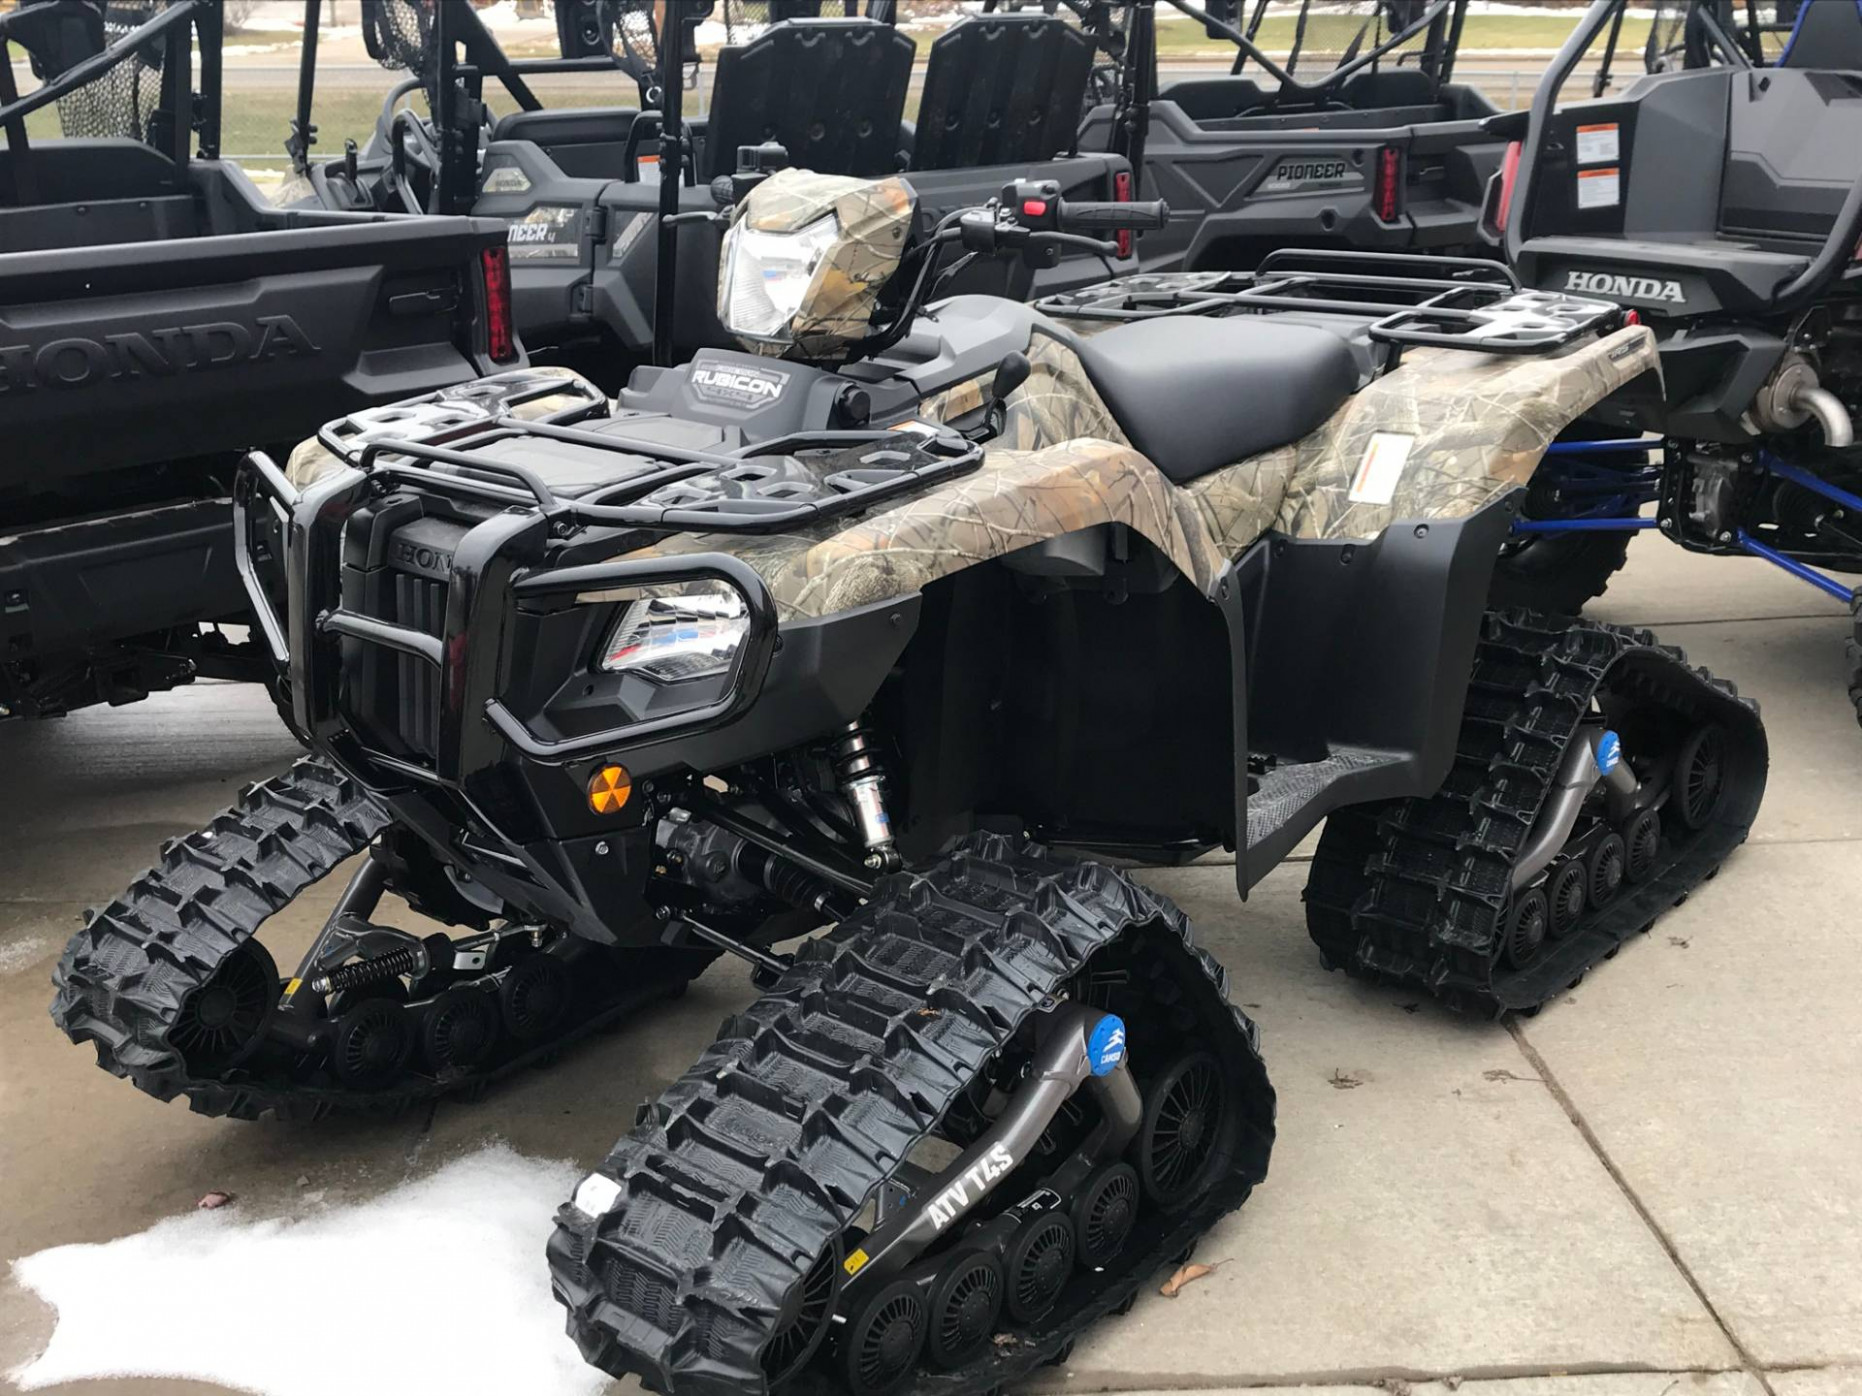 New 7 Honda FourTrax Foreman Rubicon 7x7 Automatic DCT EPS ..